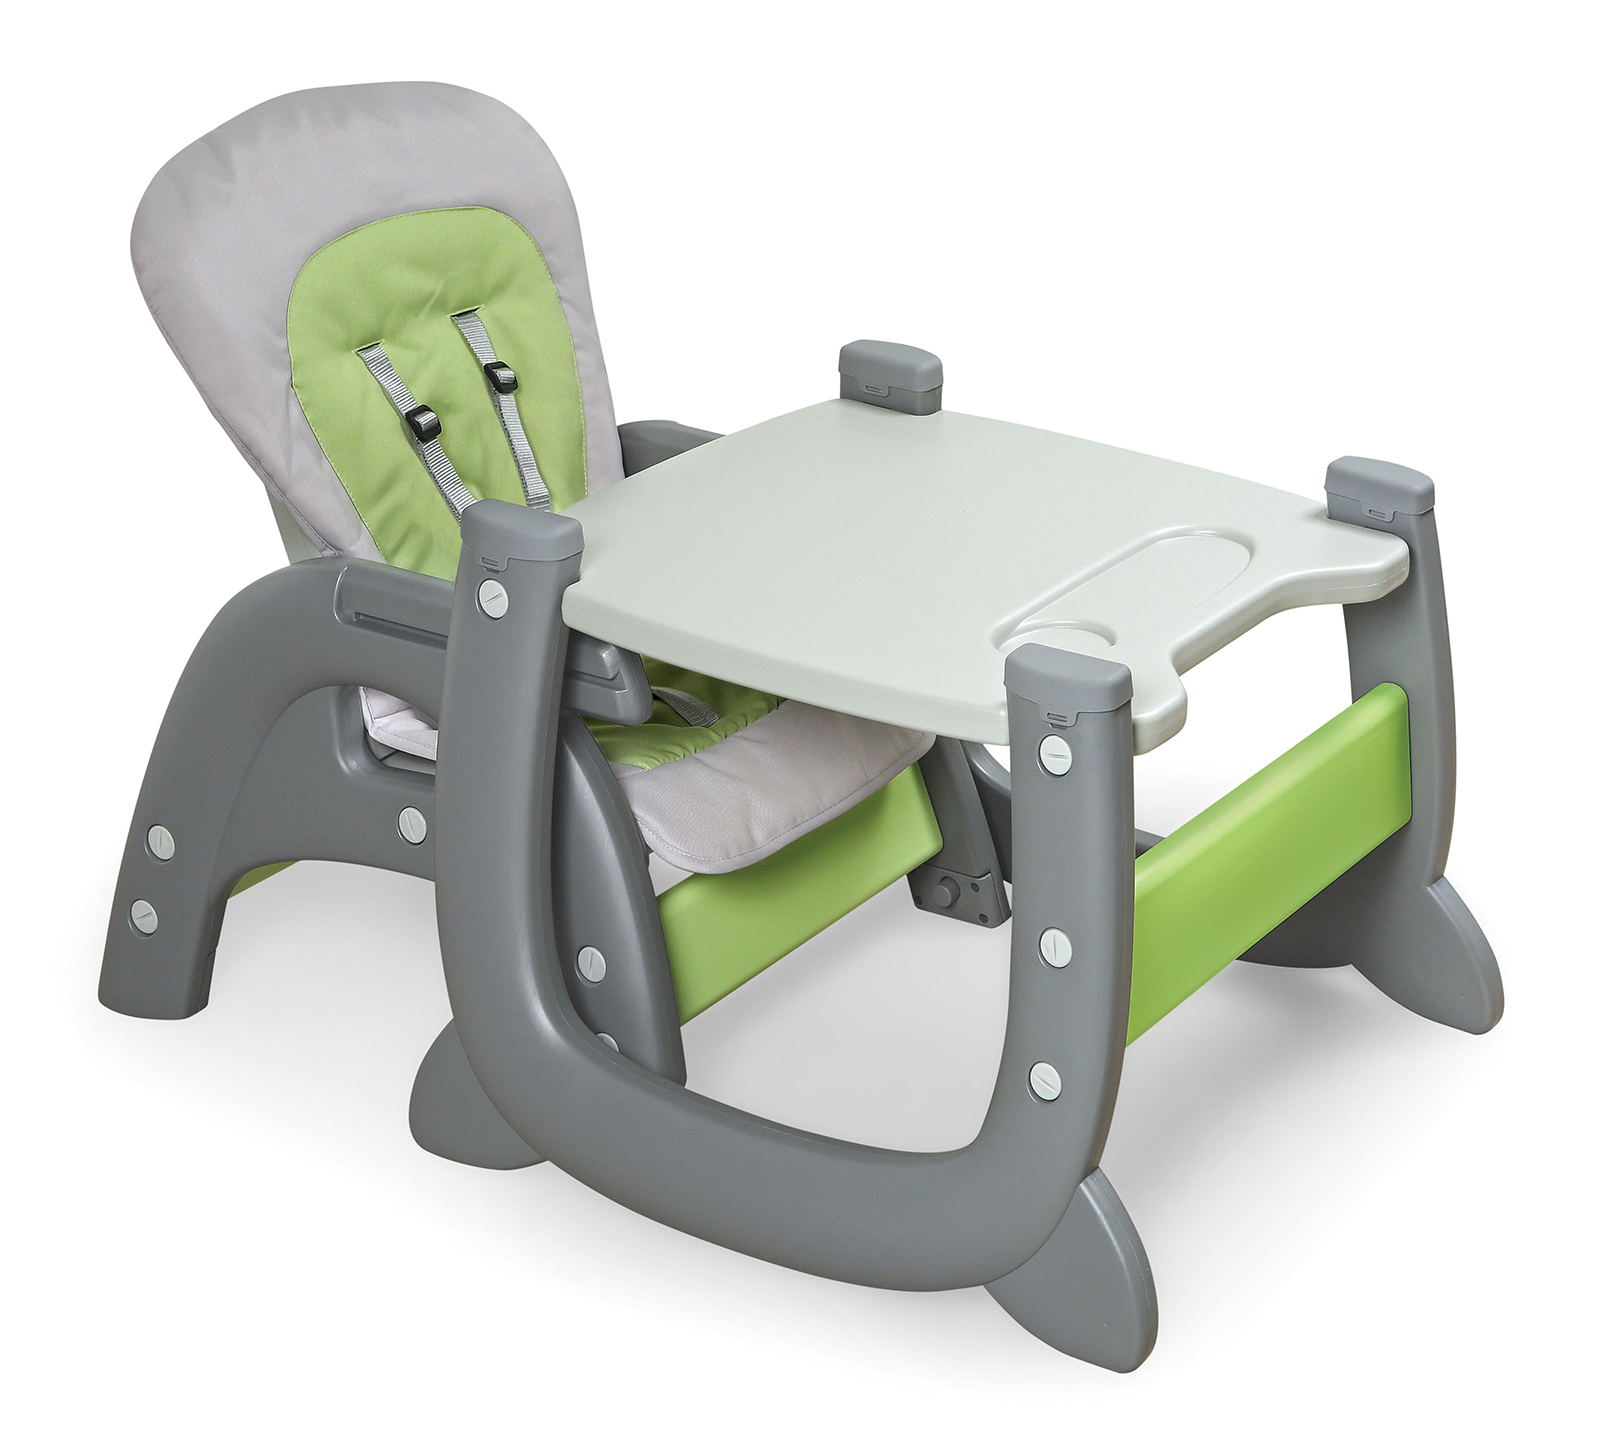 high chair converts to table and pride lift badger basket envee ii baby with playtable conversion gray green